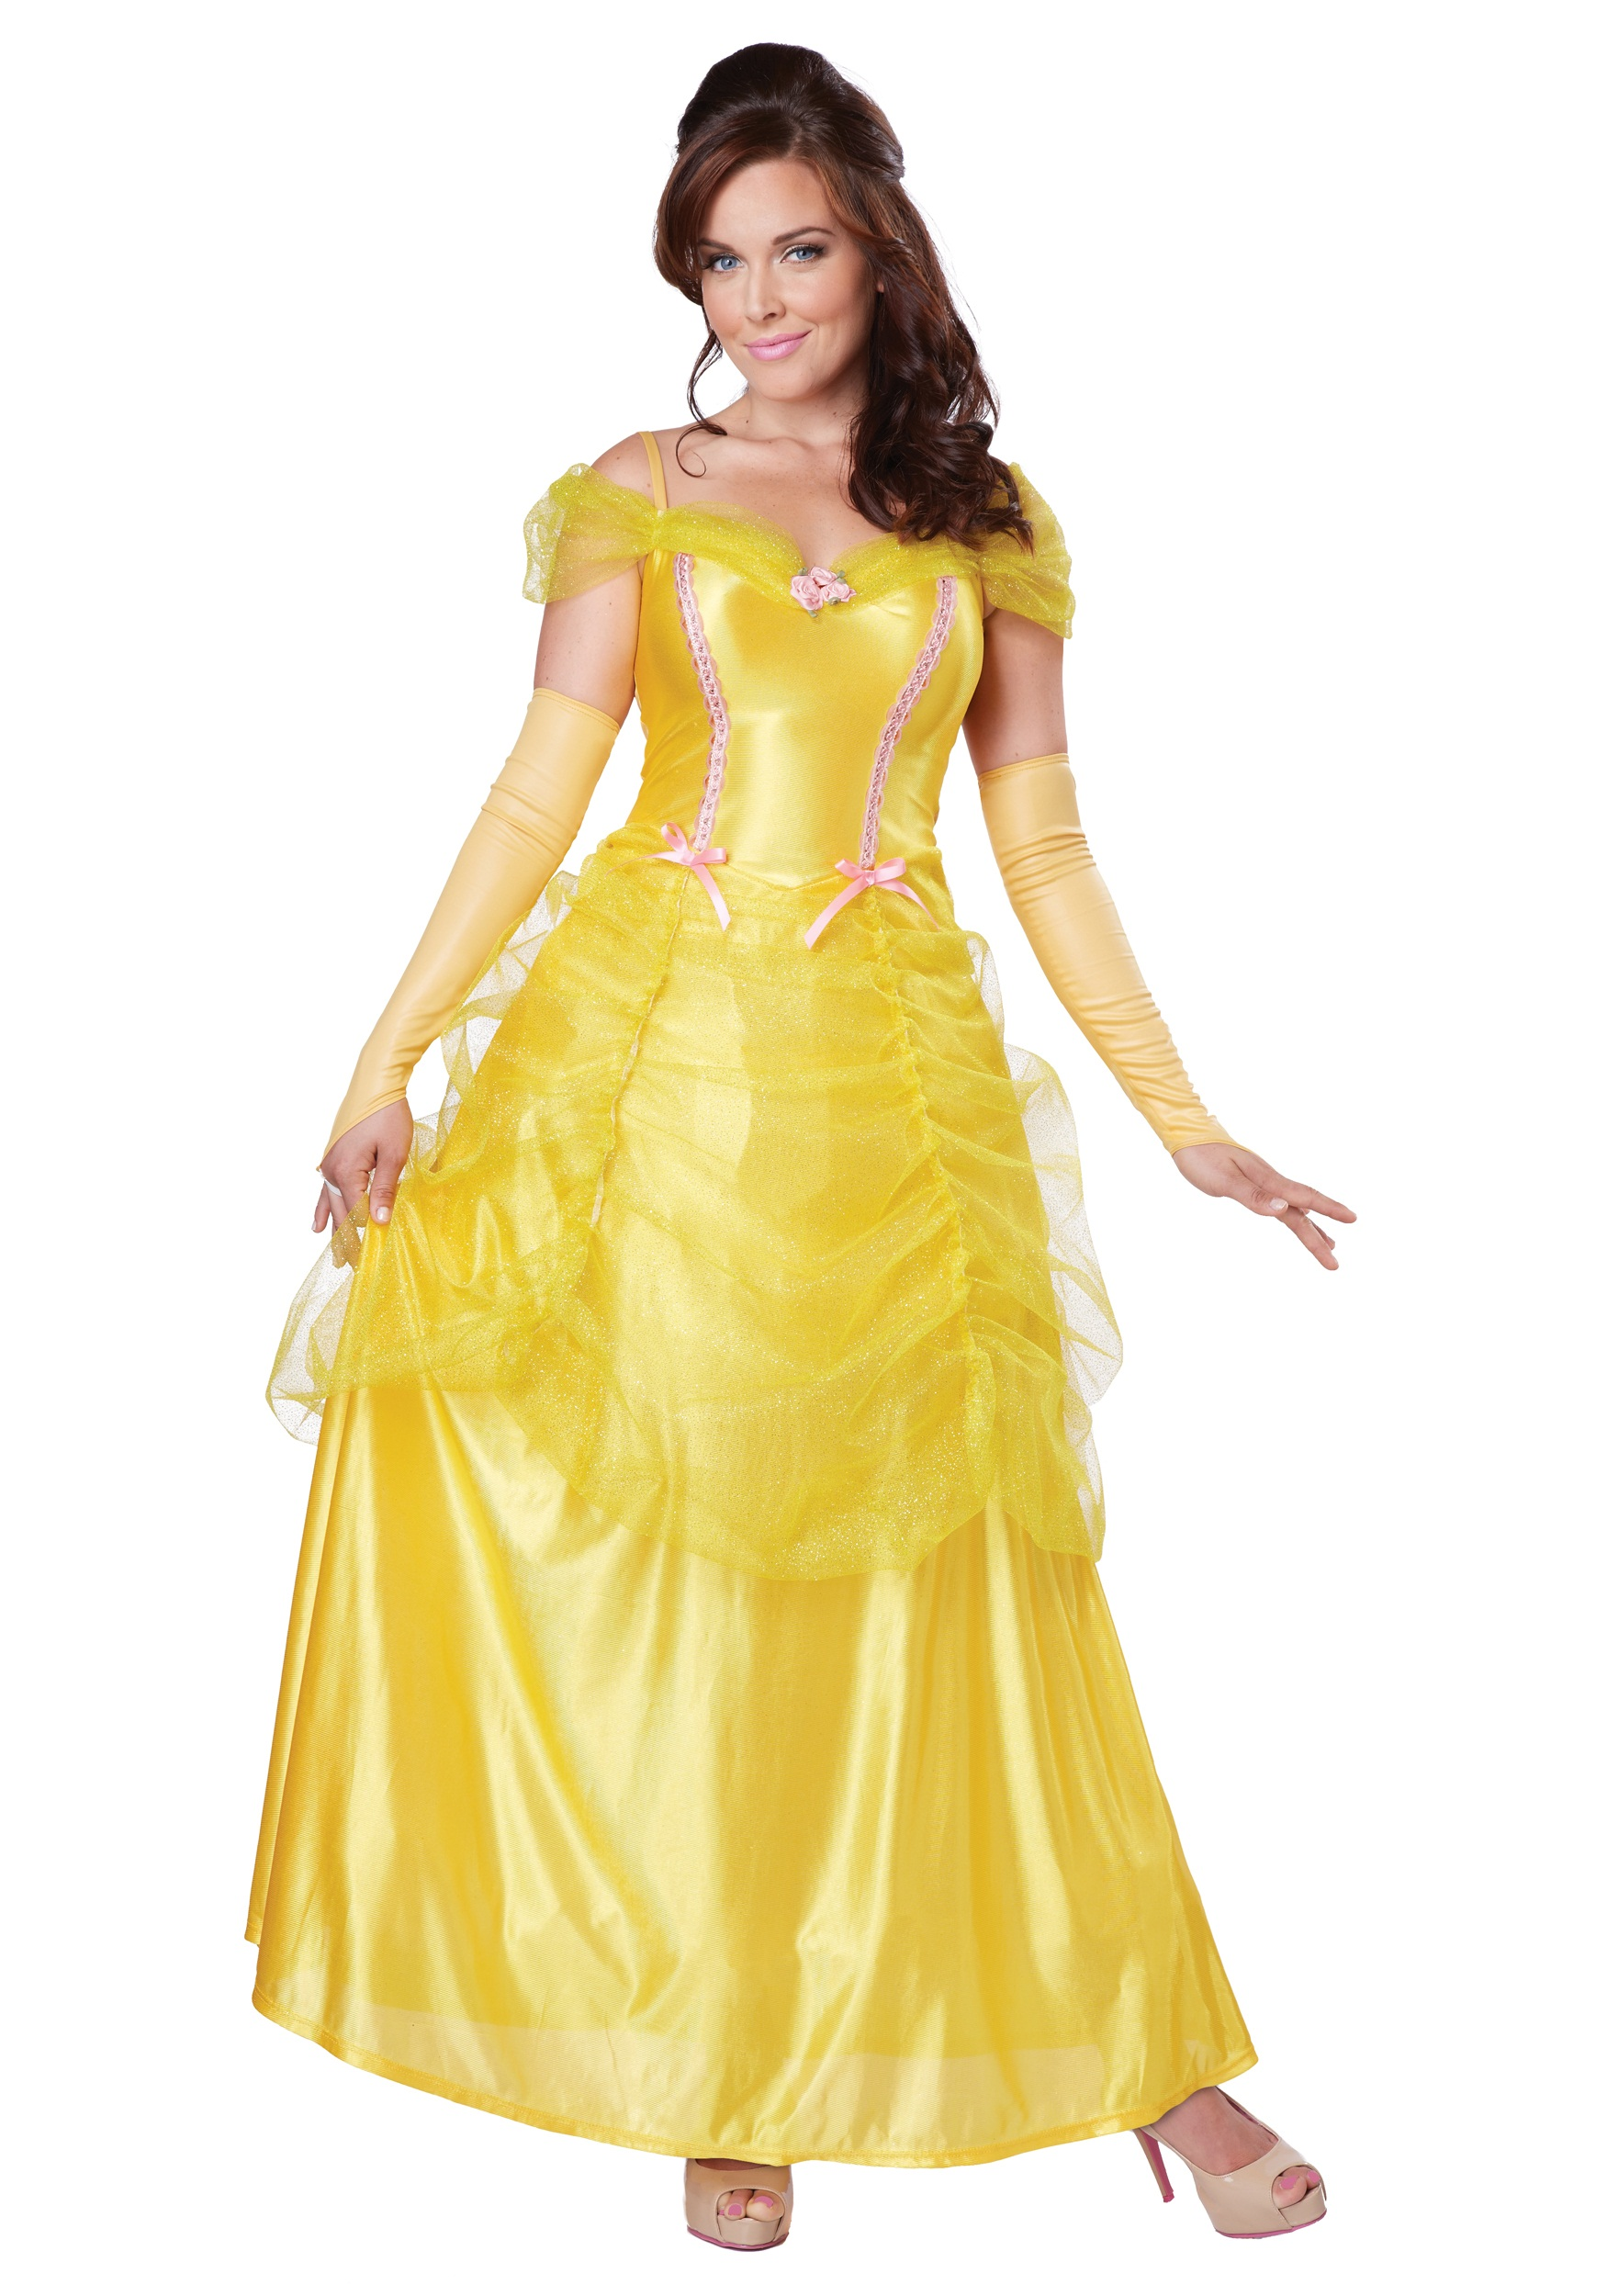 Disney princess gowns for adults - Classic Beauty